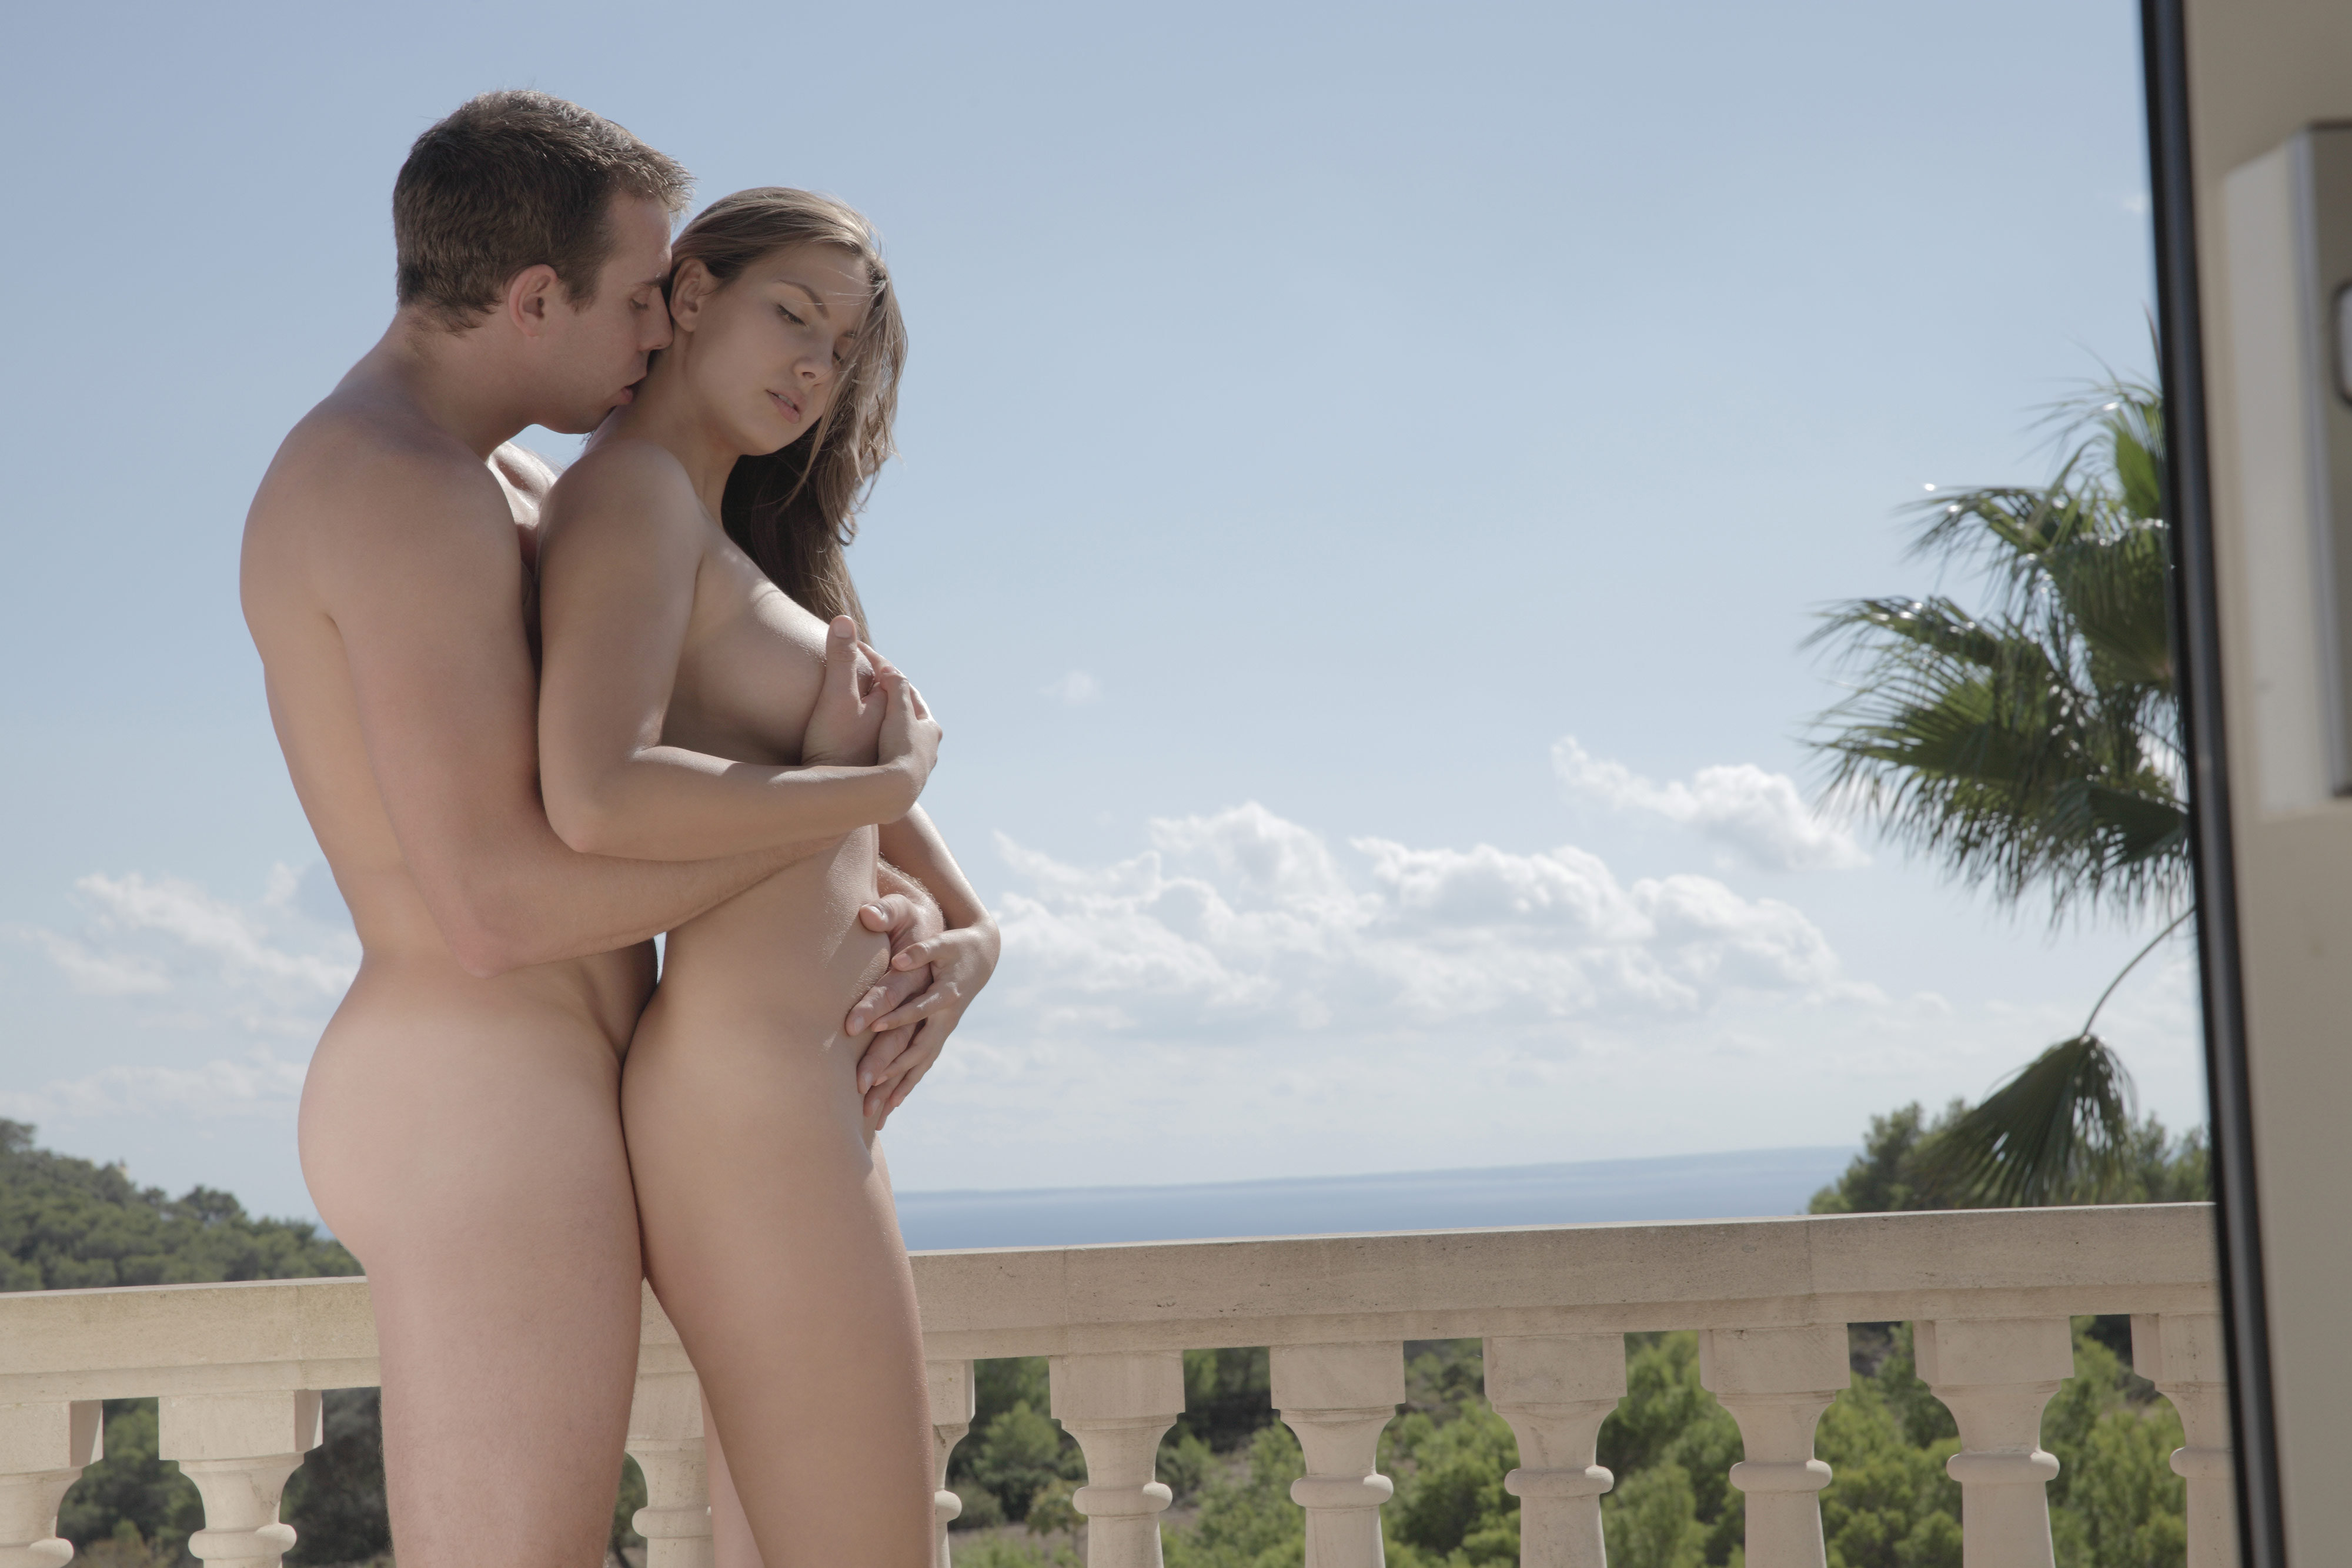 Nude public couples photos for download 8